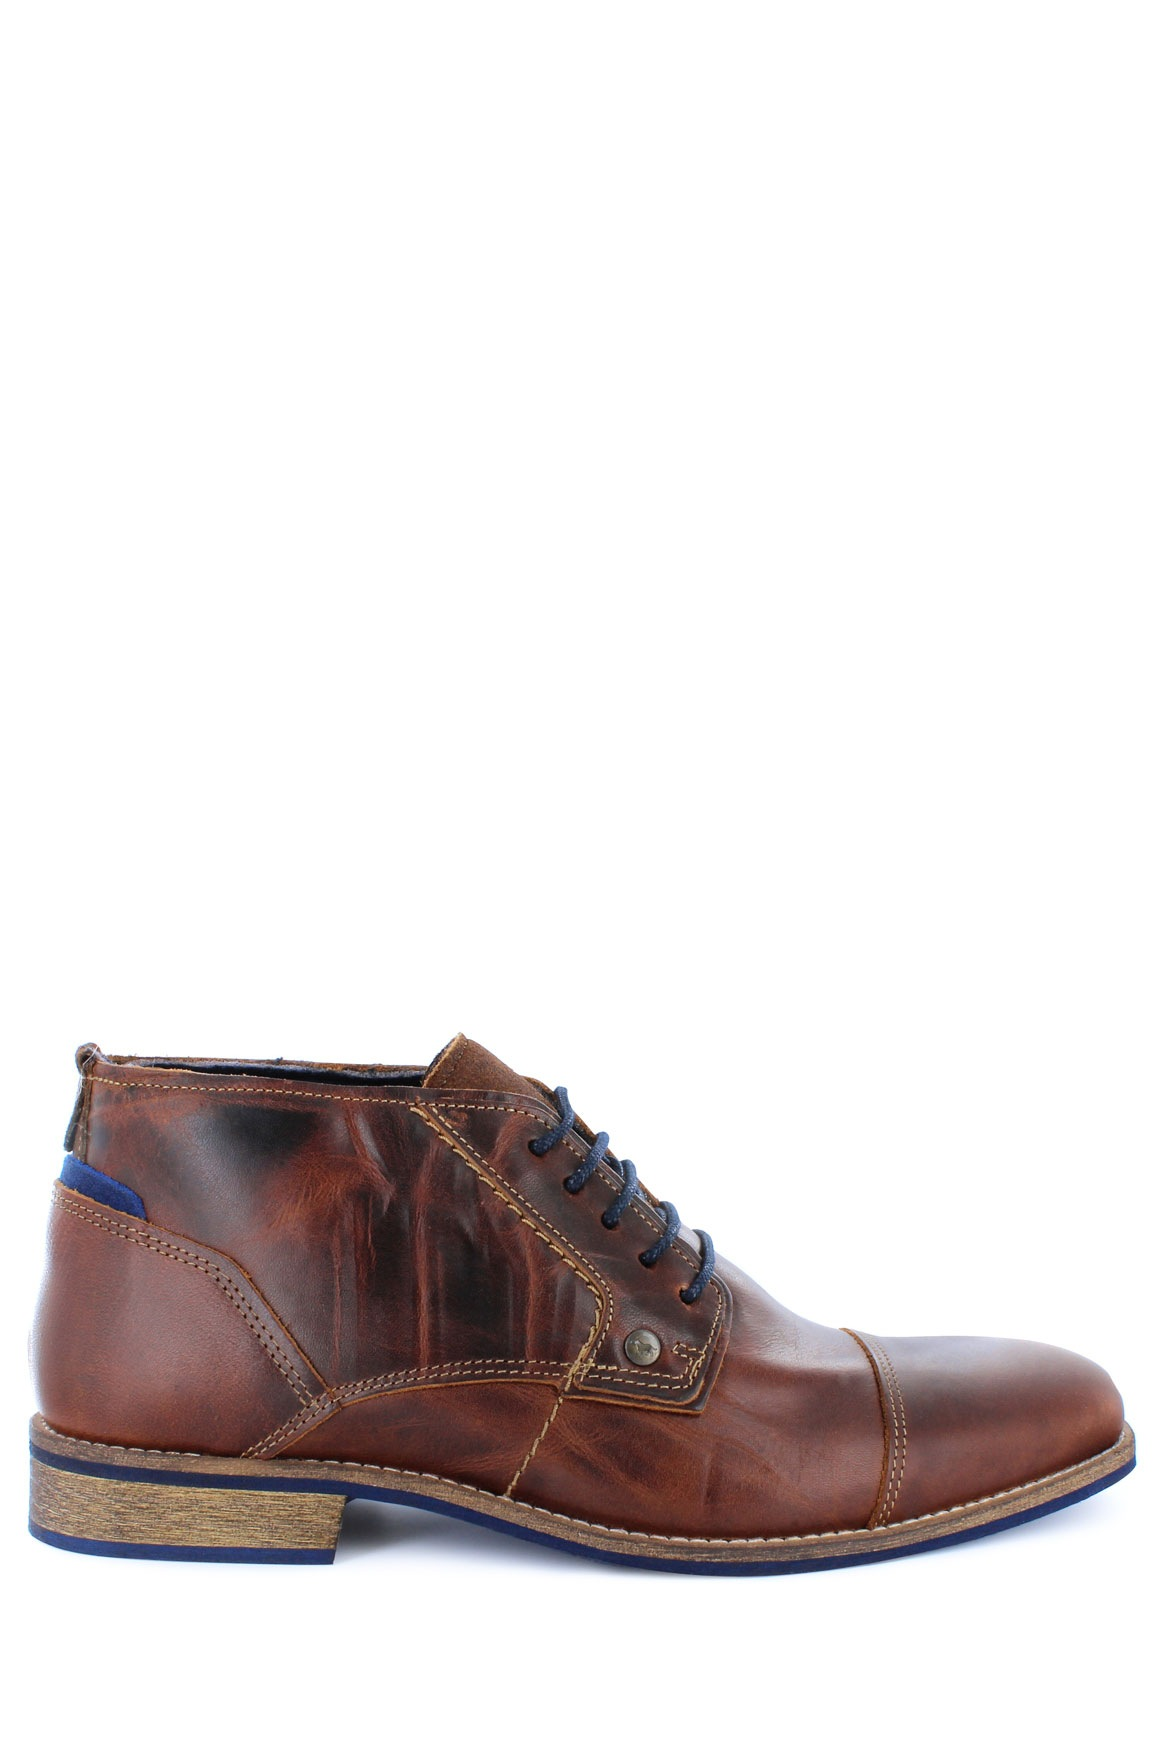 rhino digby mens casual leather ankle boot myer